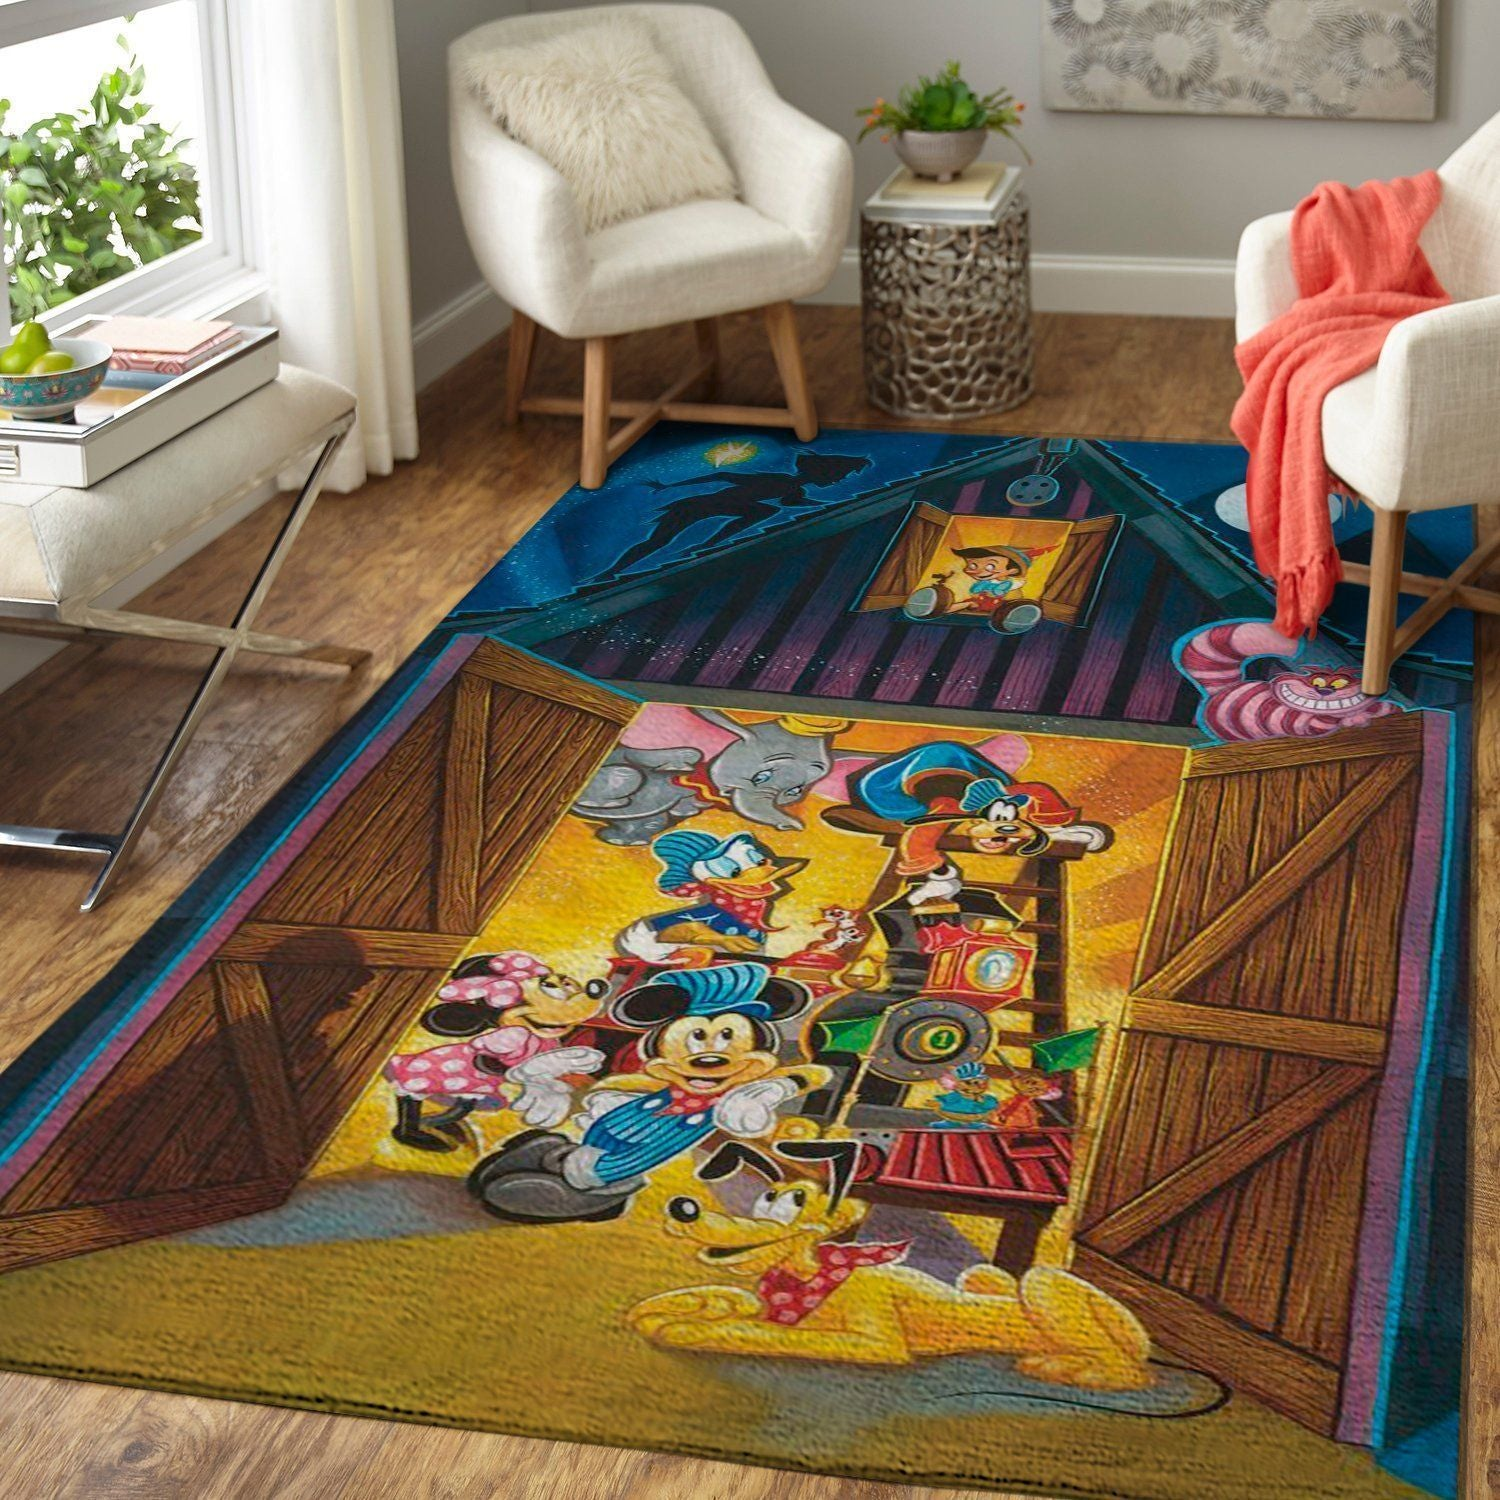 Mickey Mouse Area Rug / Disney Movie OFD 19102113